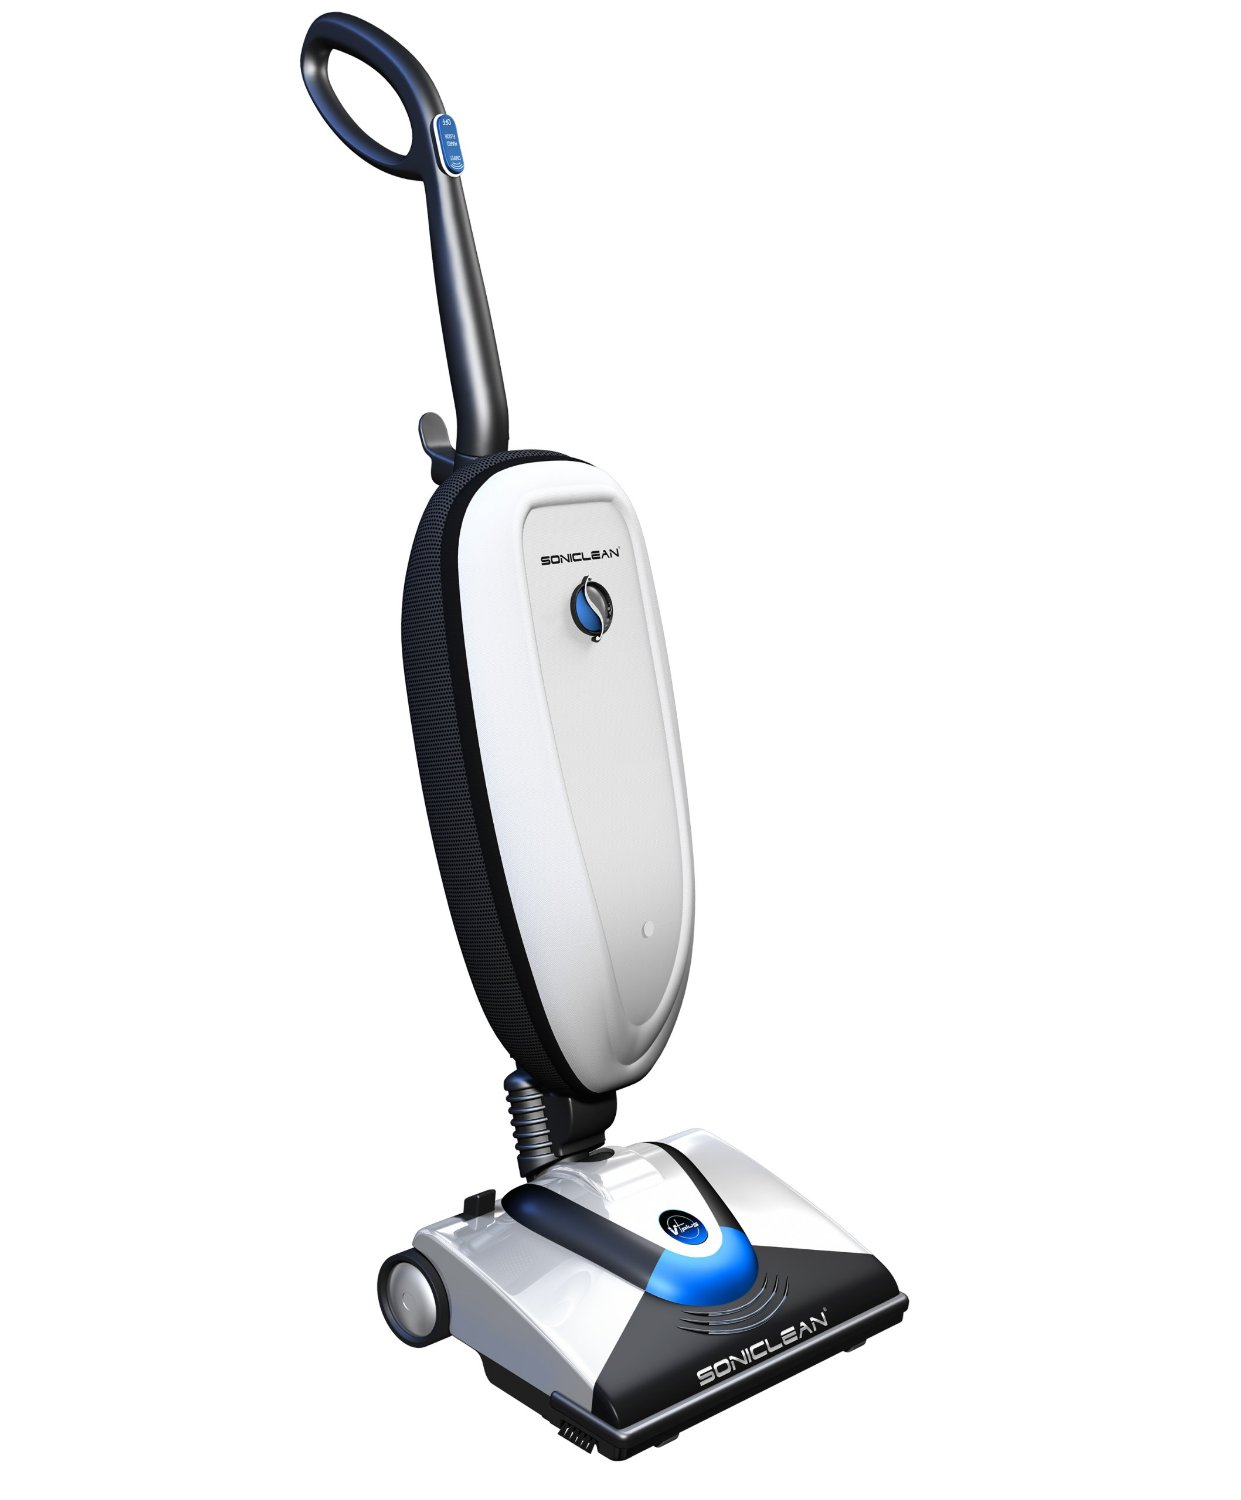 New Vacuums: New Age Mama: Soniclean VT Plus S-200 Vacuum Review